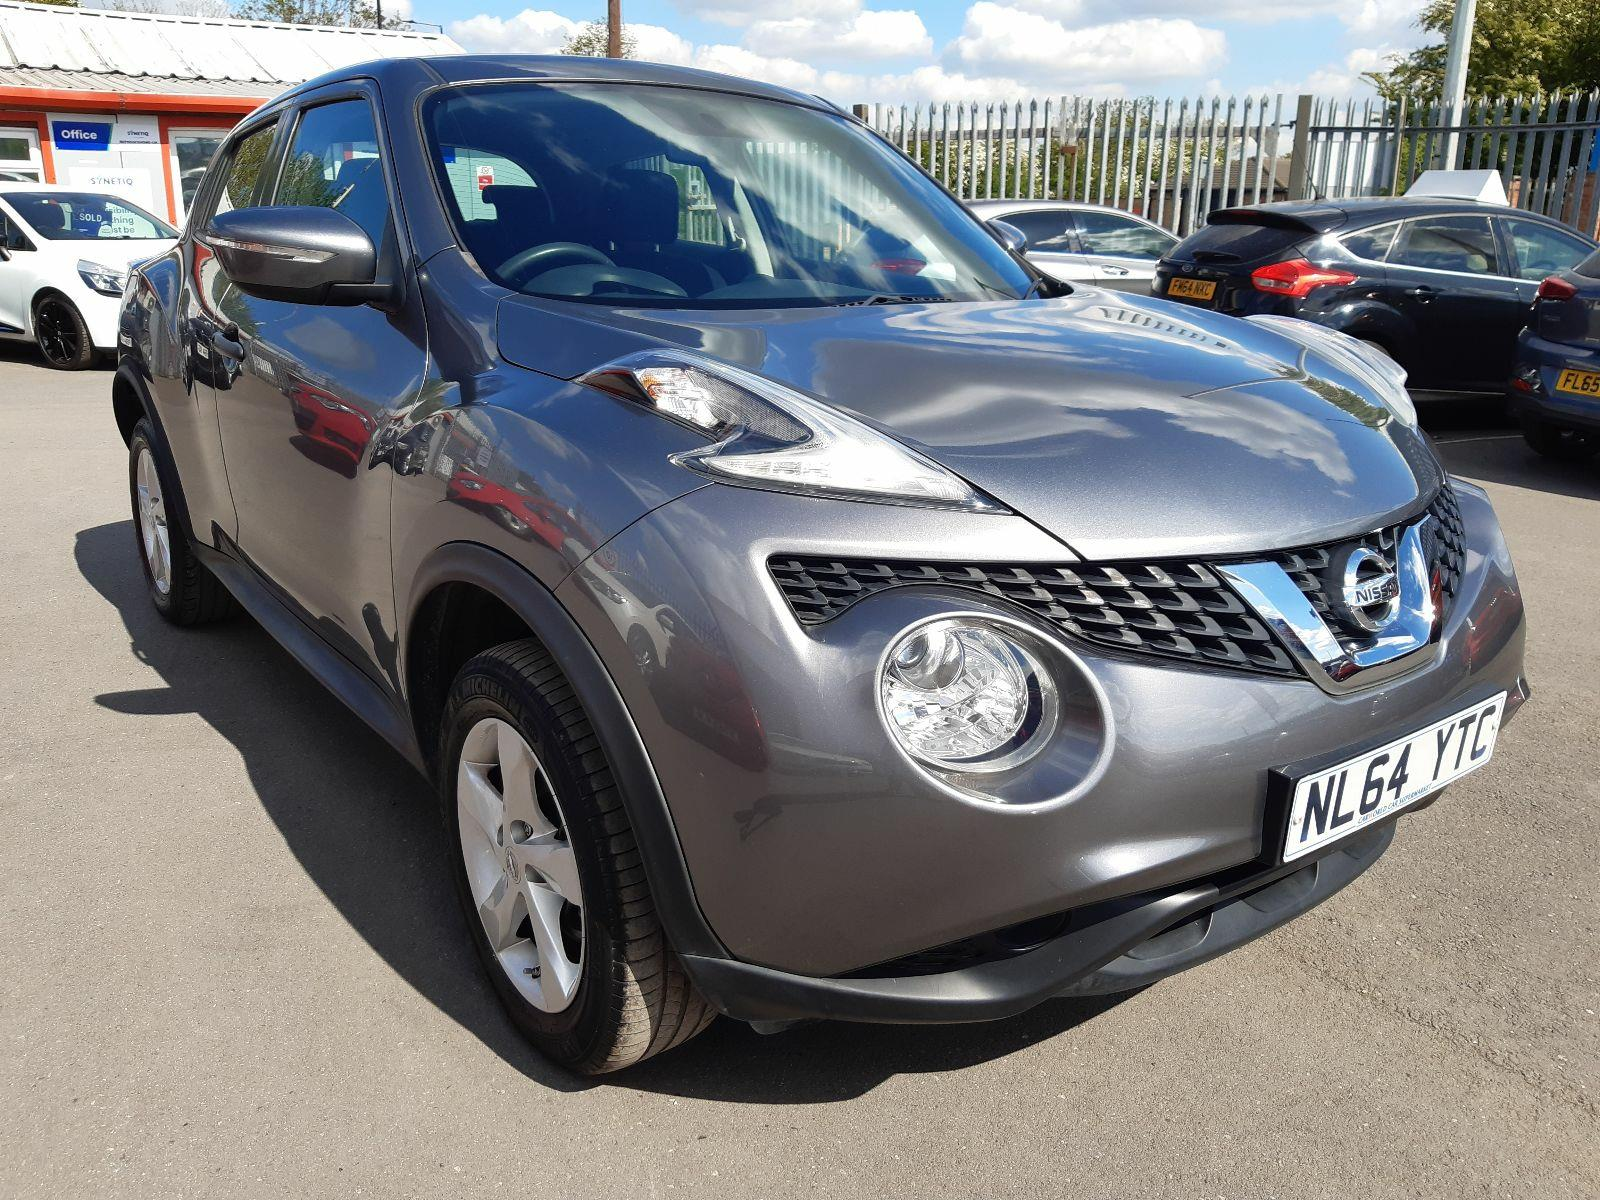 2014 NISSAN JUKE VISIA DCI 1461 DIESEL MANUAL 5 DOOR HATCHBACK